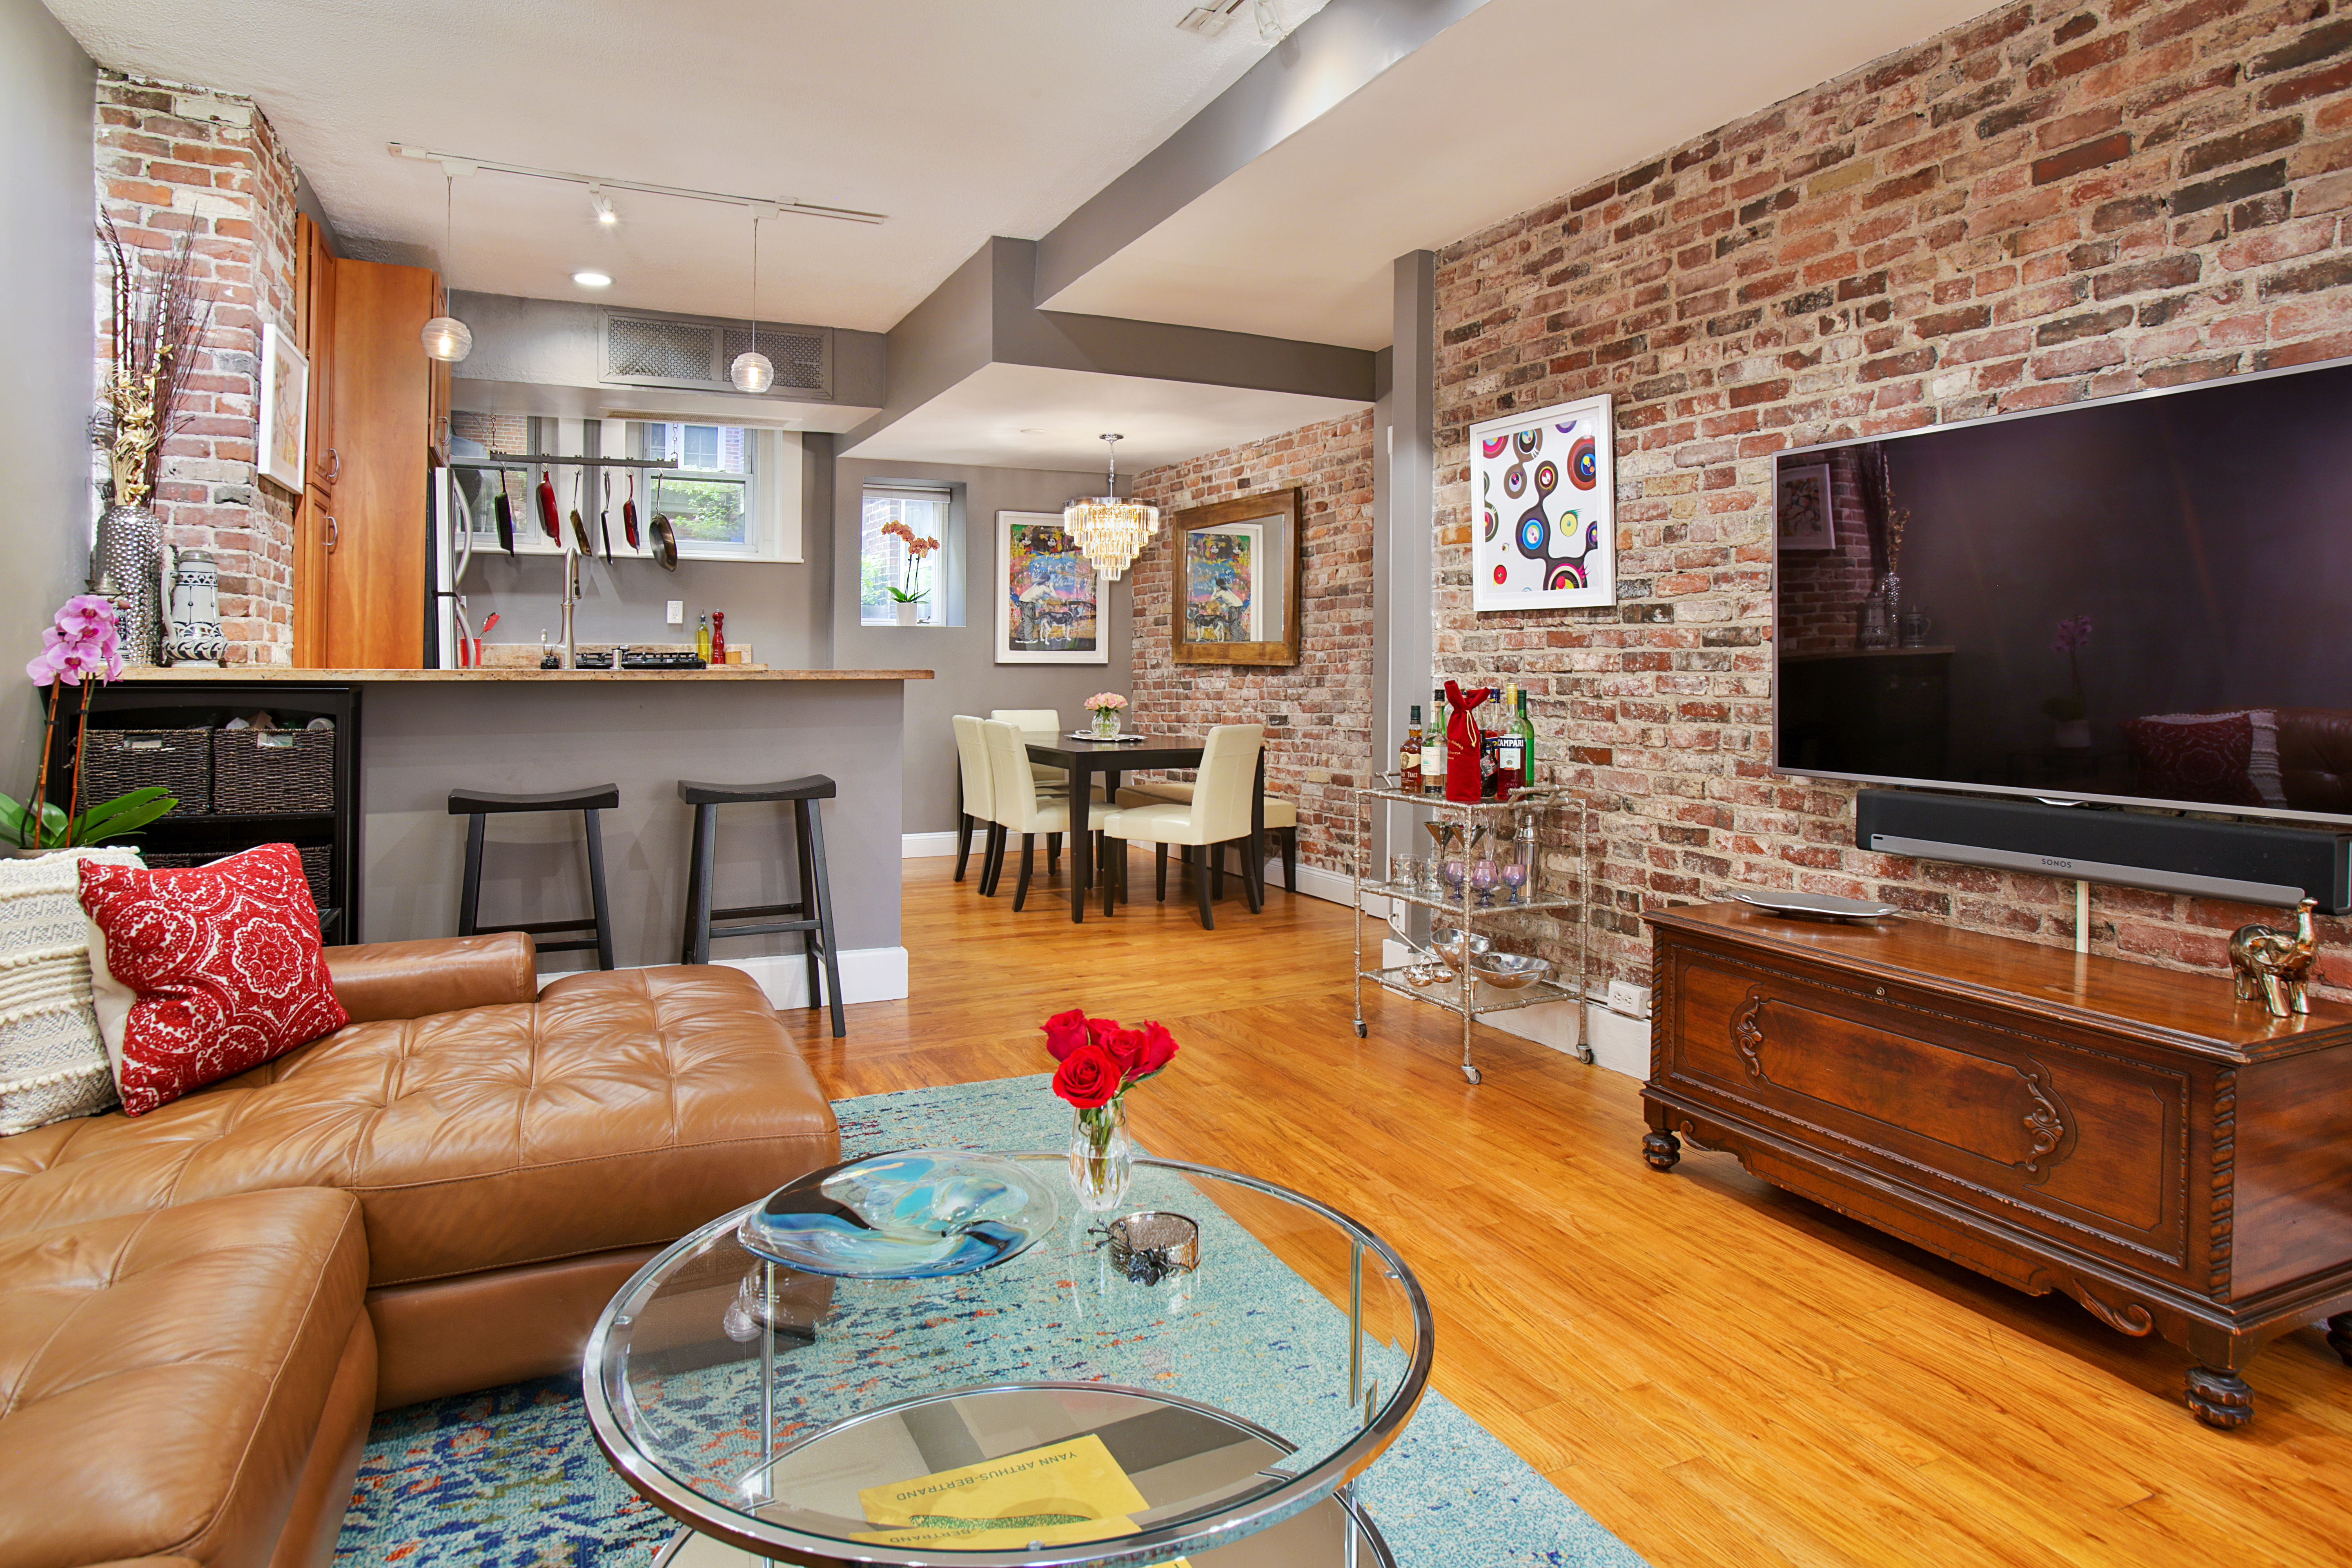 A living room with a large couch facing a TV, and there's a lot of exposed brick on the walls, and the living room leads to a kitchen.